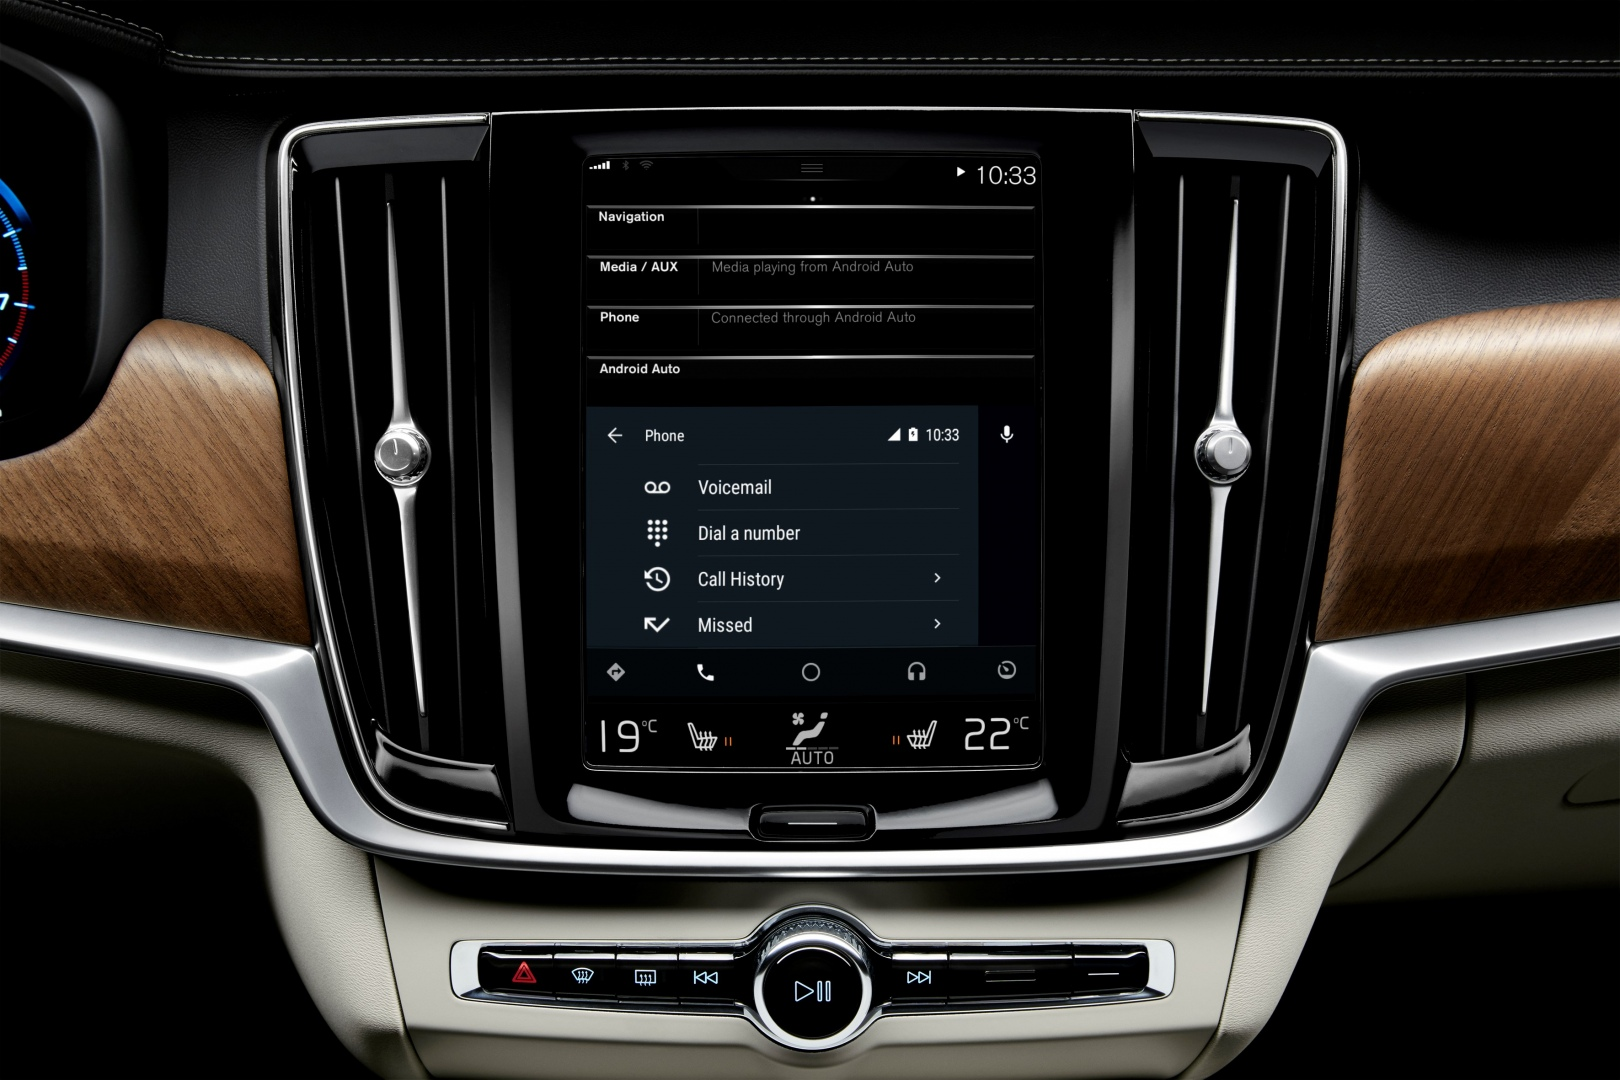 201020_Android_Auto_phone